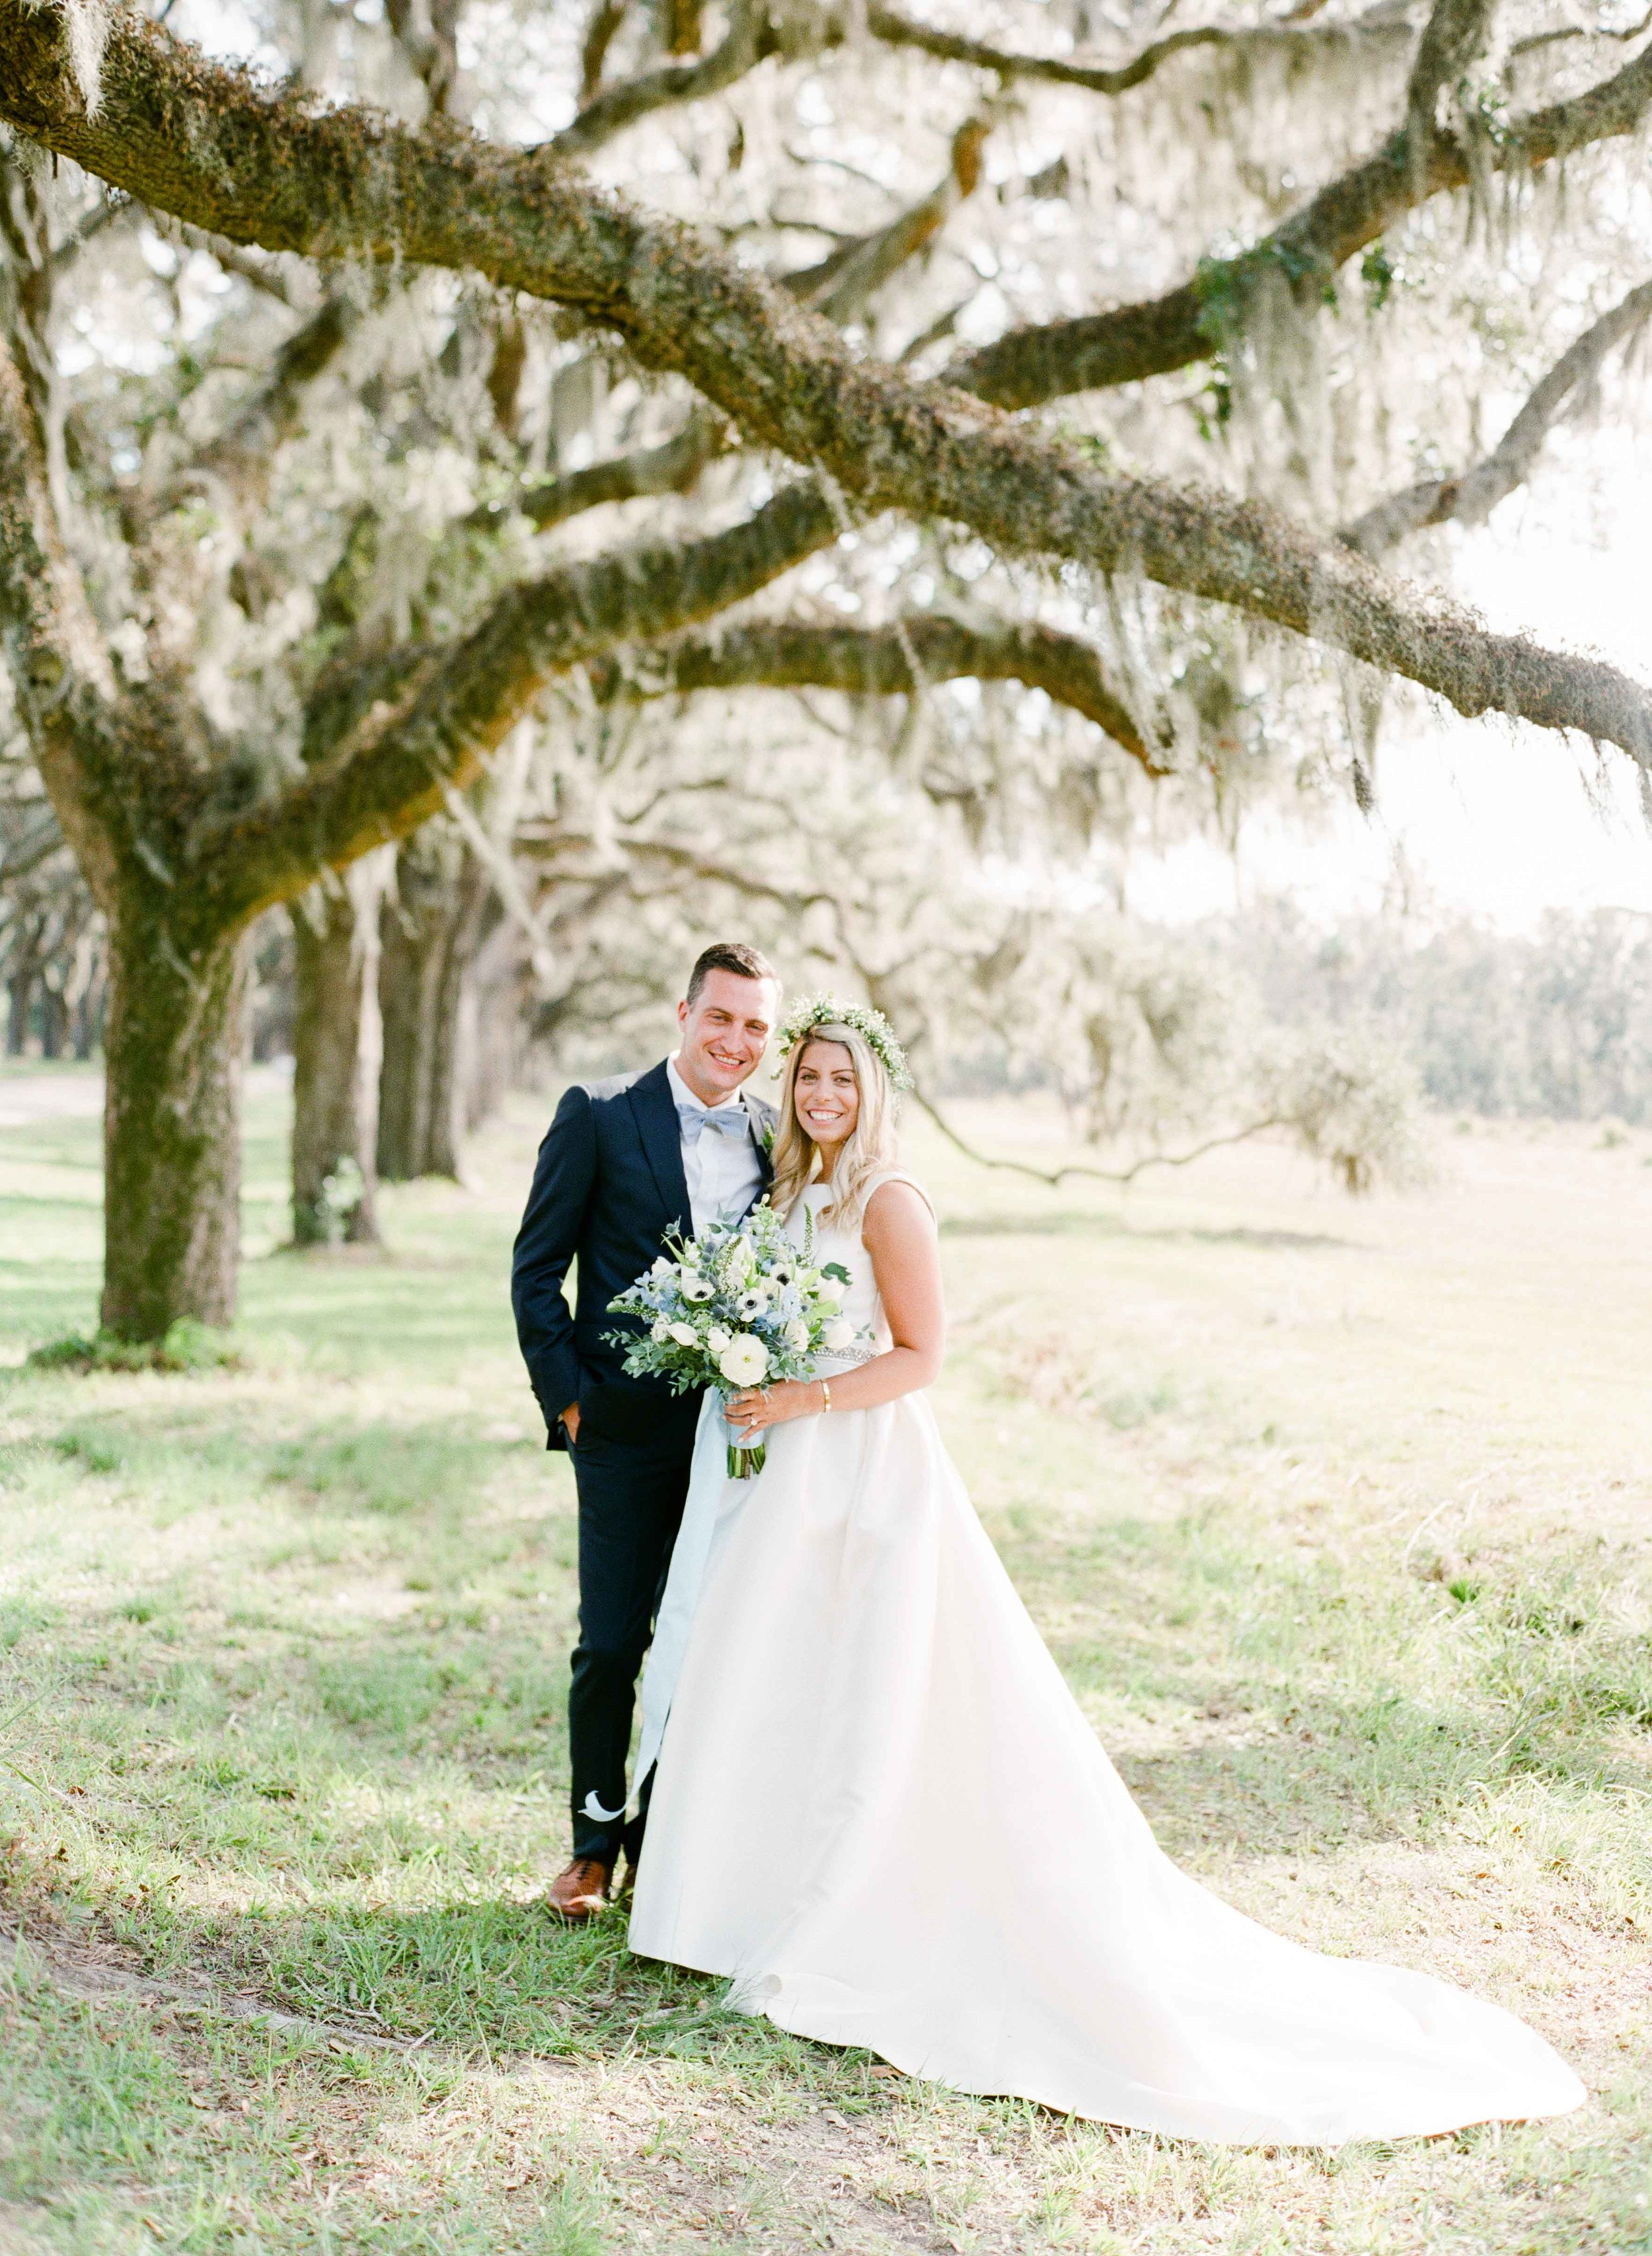 jen & paul - We are literally speechless - these photos are absolutely incredible and so capture all aspects of the day, and the utter joy we were feeling. Thank you, thank you, thank you a million times over. You are truly unbelievable.